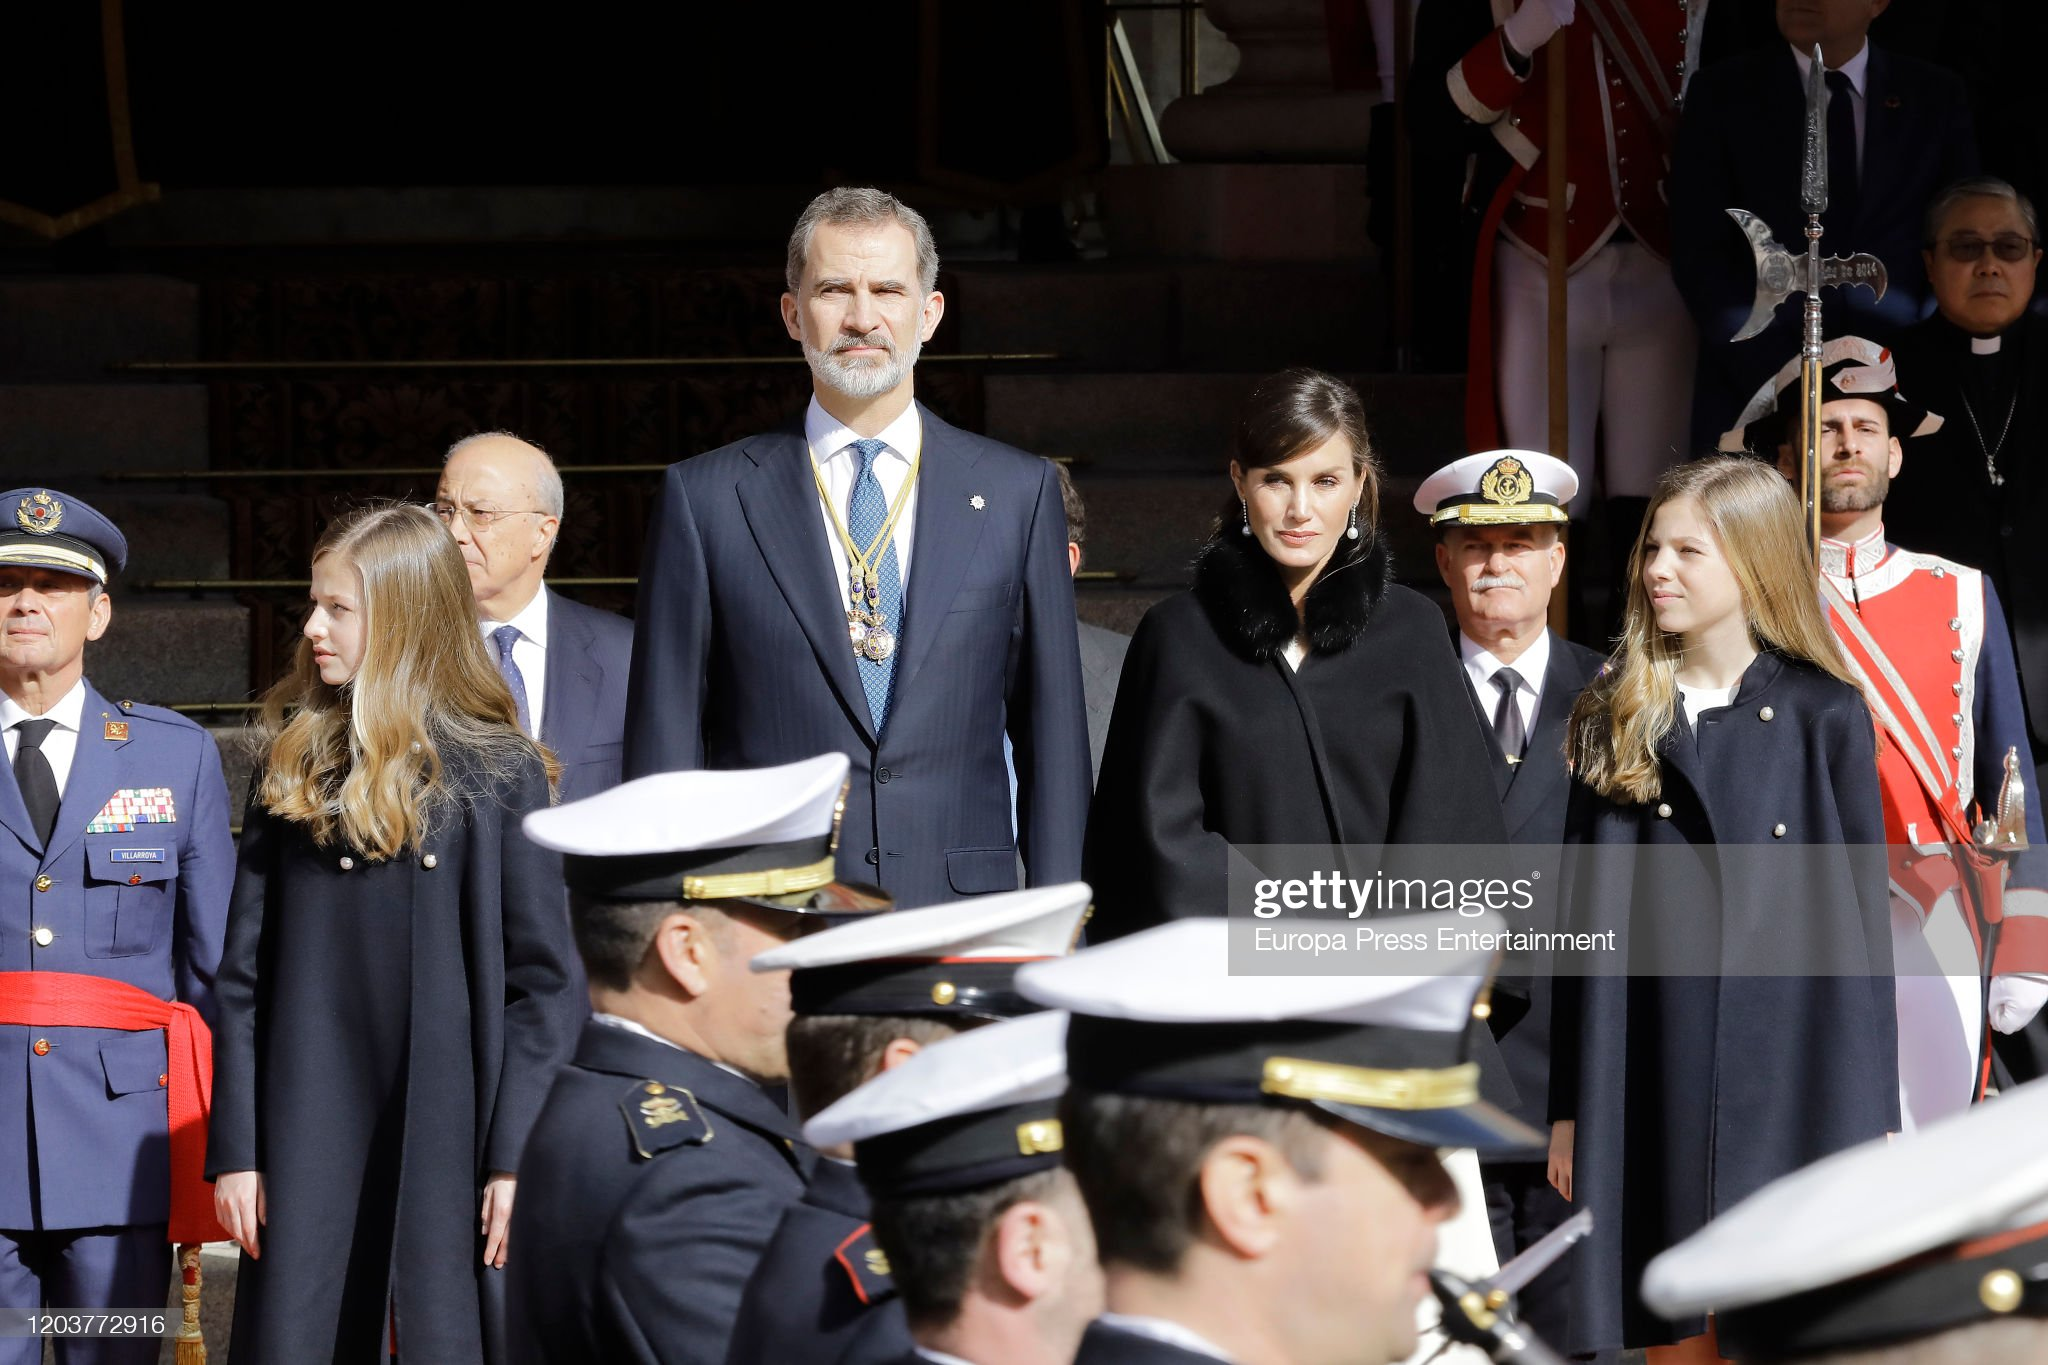 https://media.gettyimages.com/photos/princess-leonor-of-spain-king-felipe-of-spain-queen-letizia-of-spain-picture-id1203772916?s=2048x2048